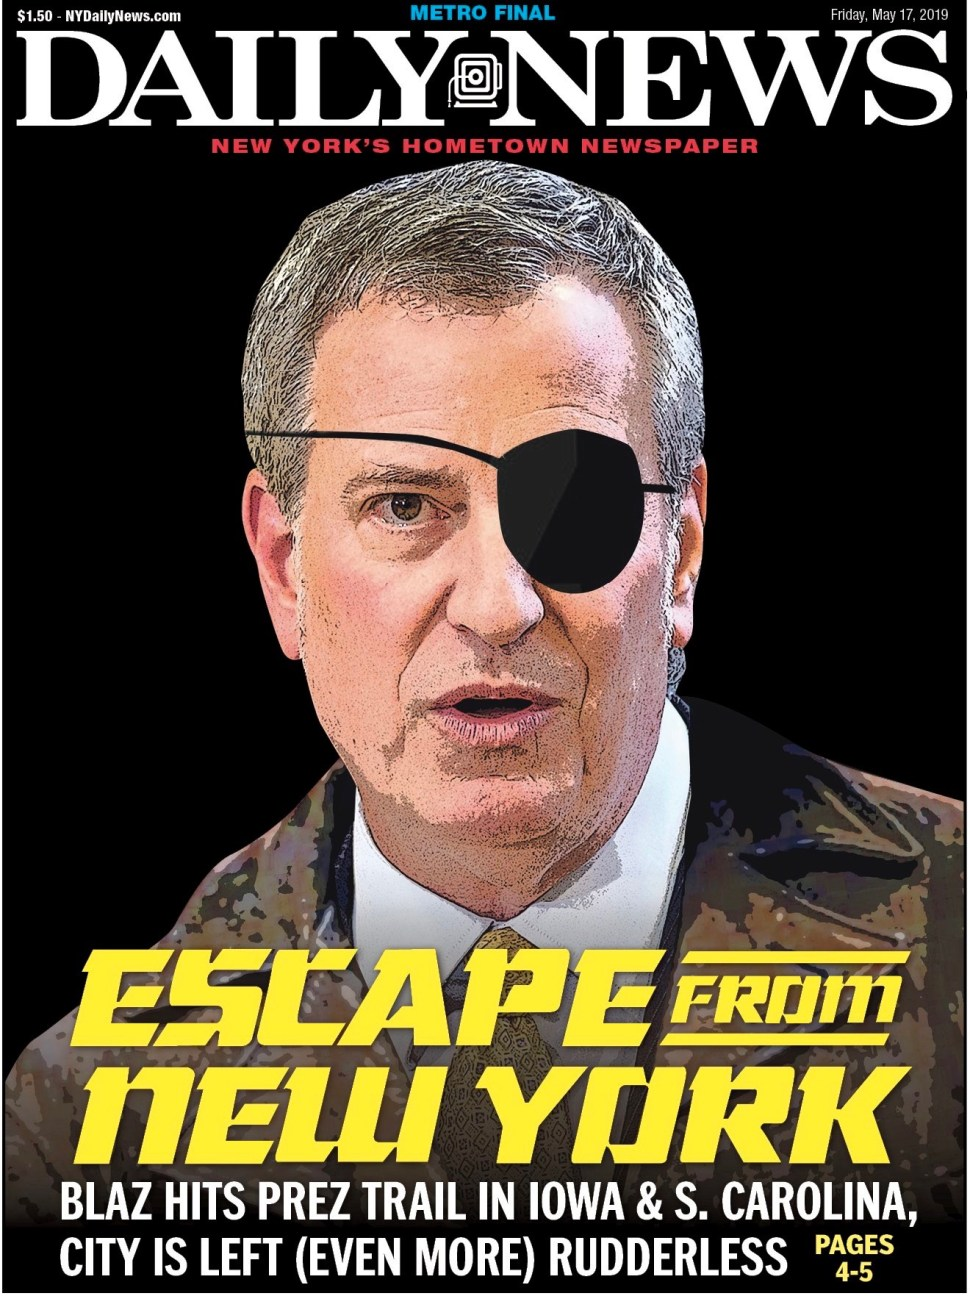 NY Daily News Cover. Screenshot by Rick Stachura. May 17, 2019.